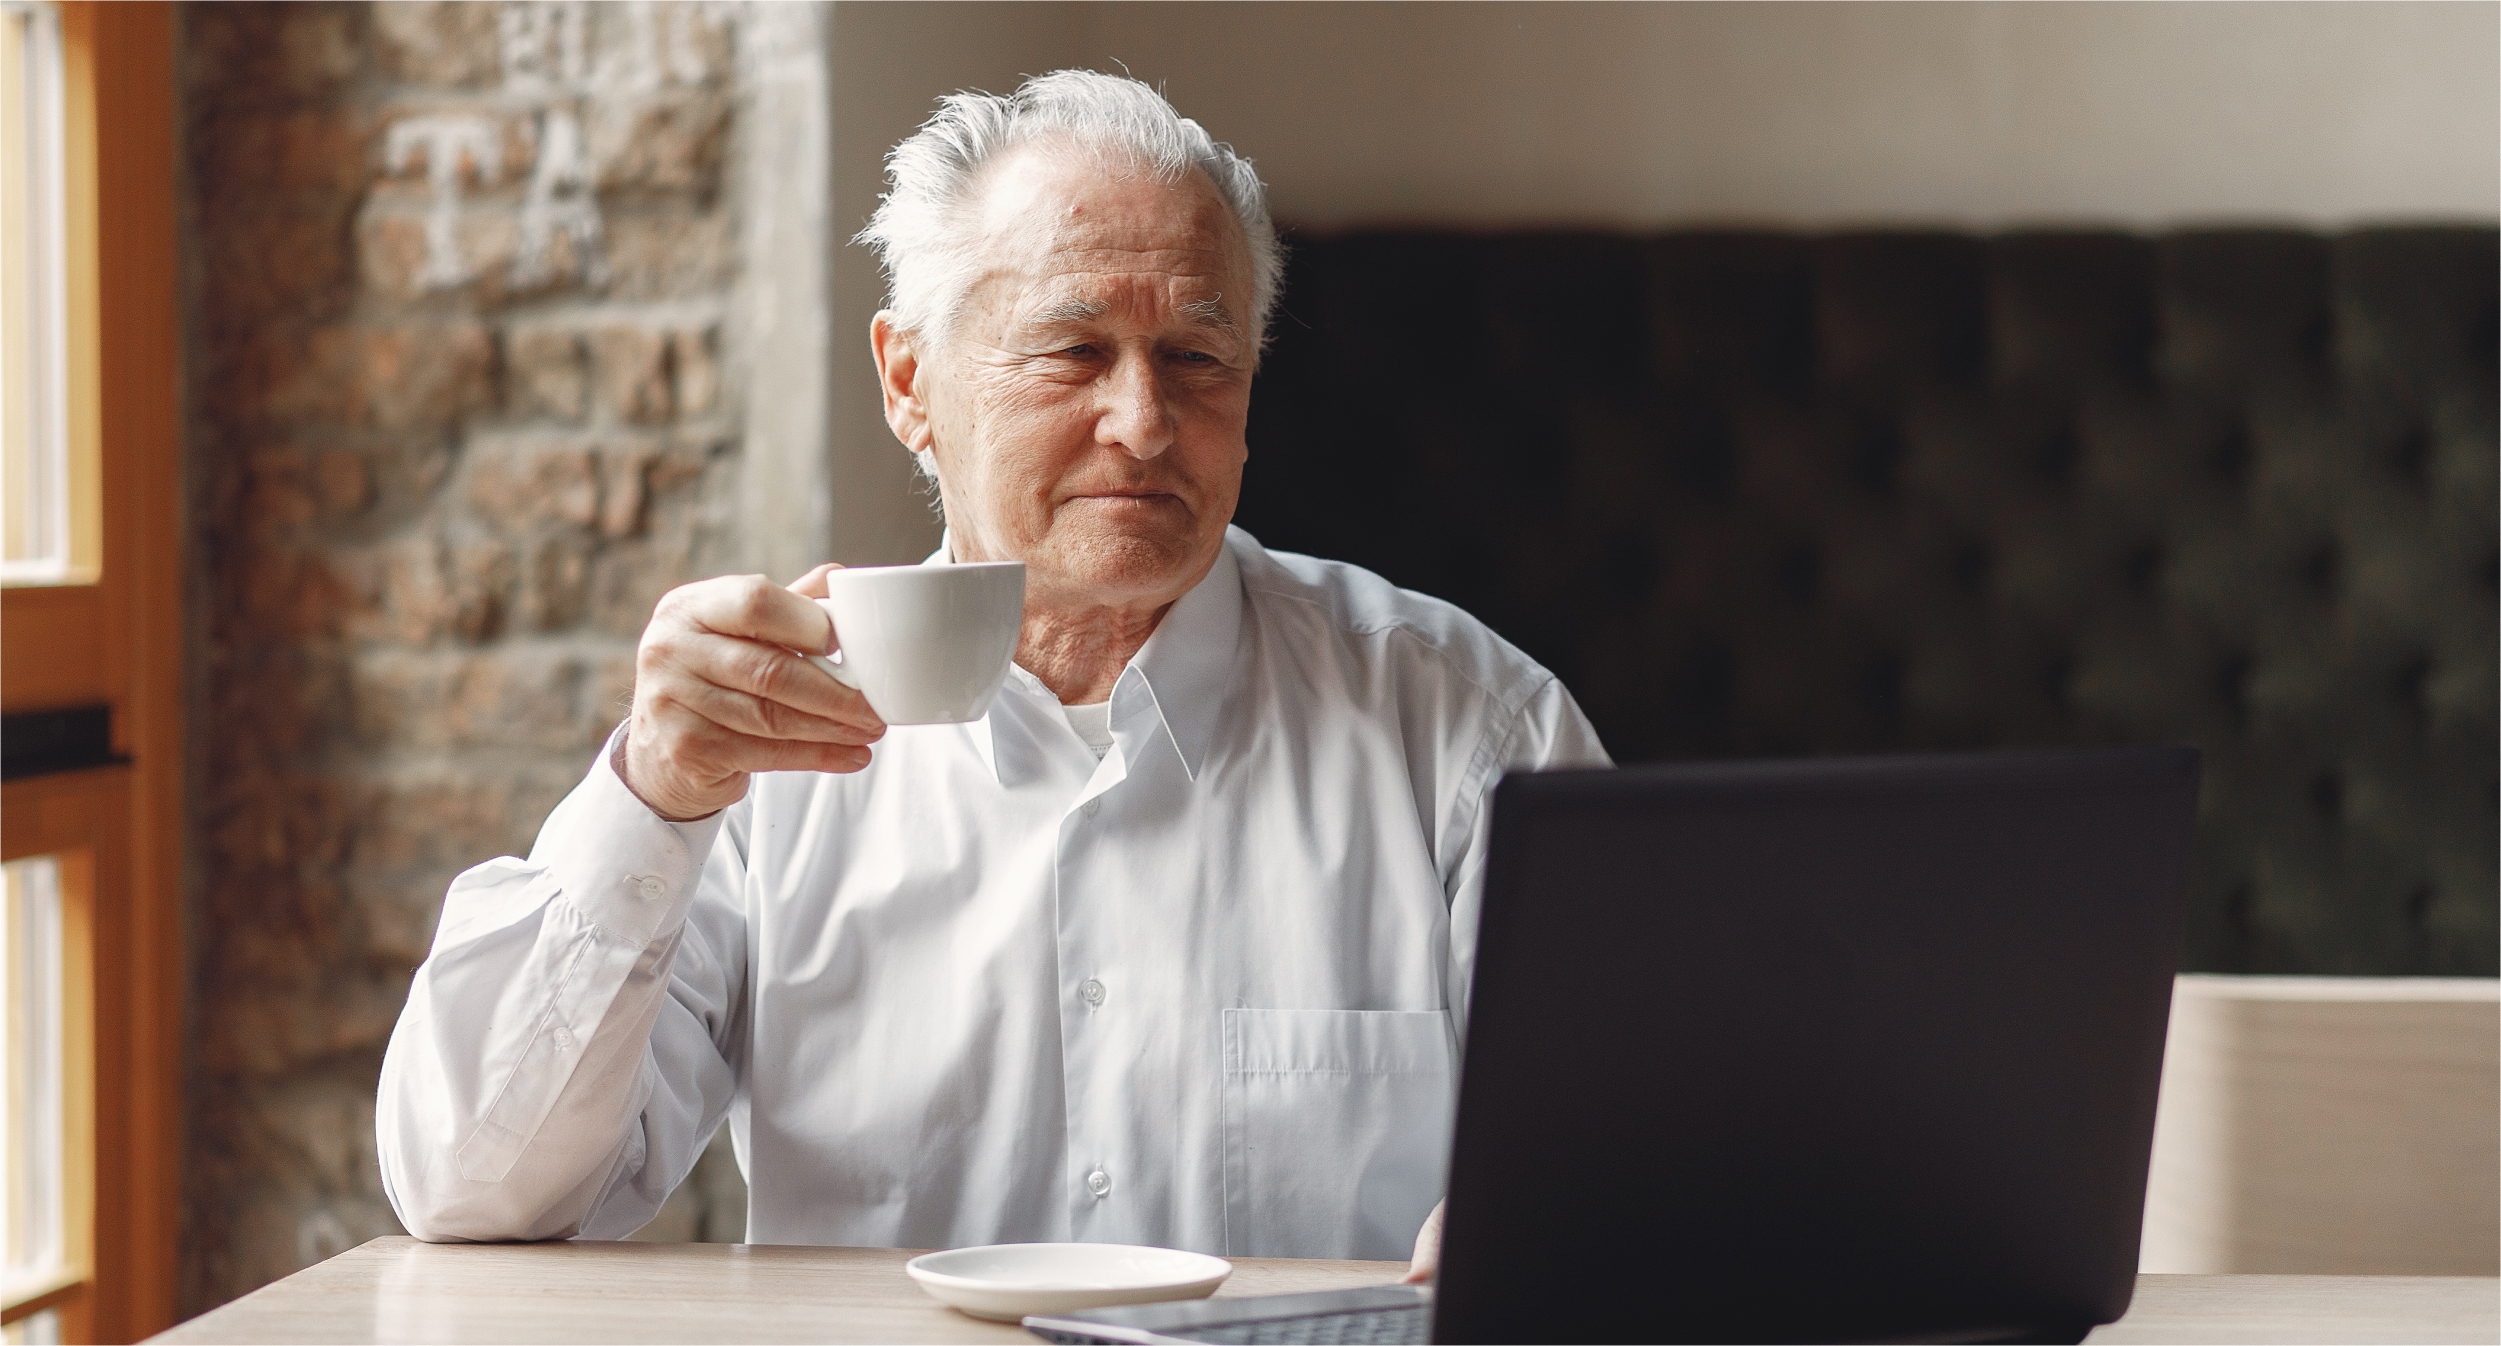 old-man-sitting-table-working-with-laptop   Botkeeper